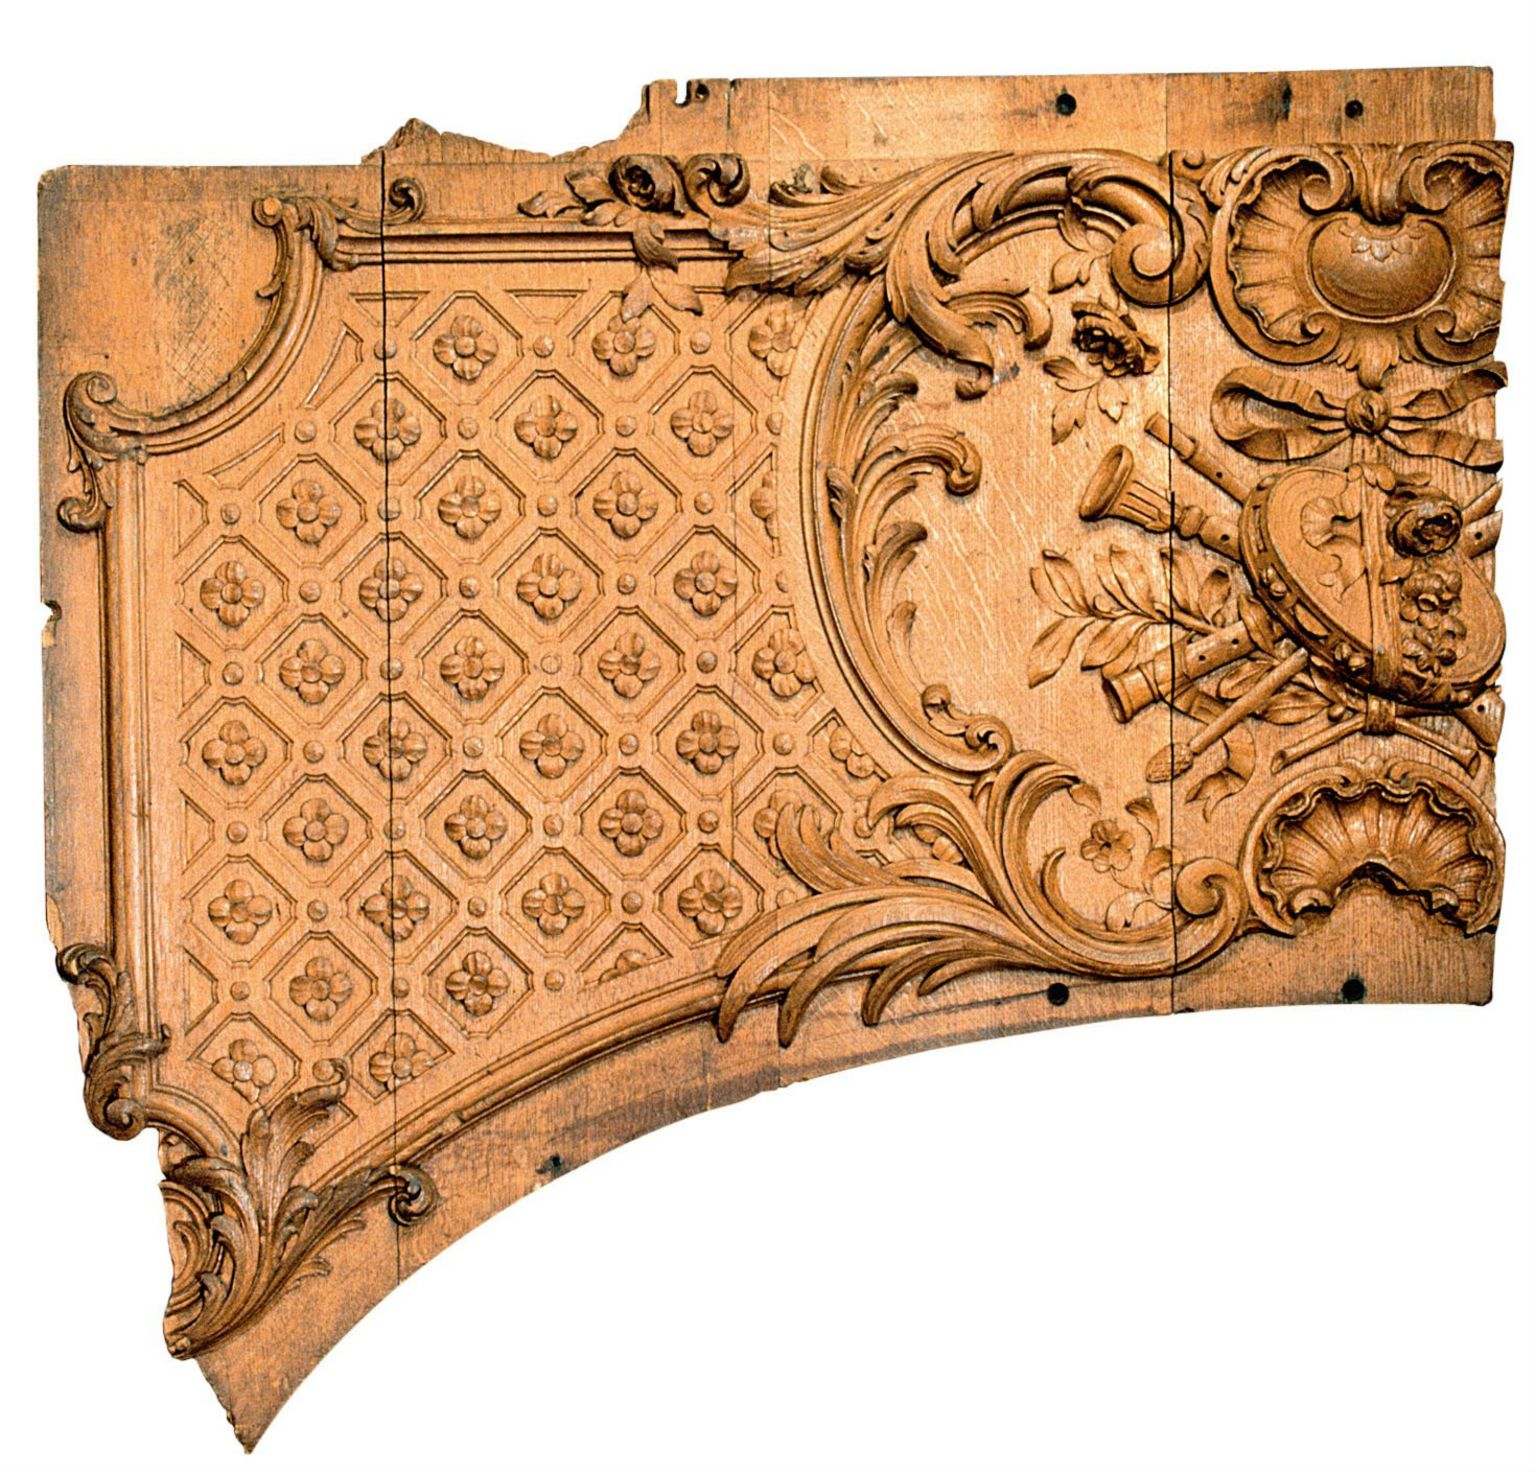 Titanic panel fragment